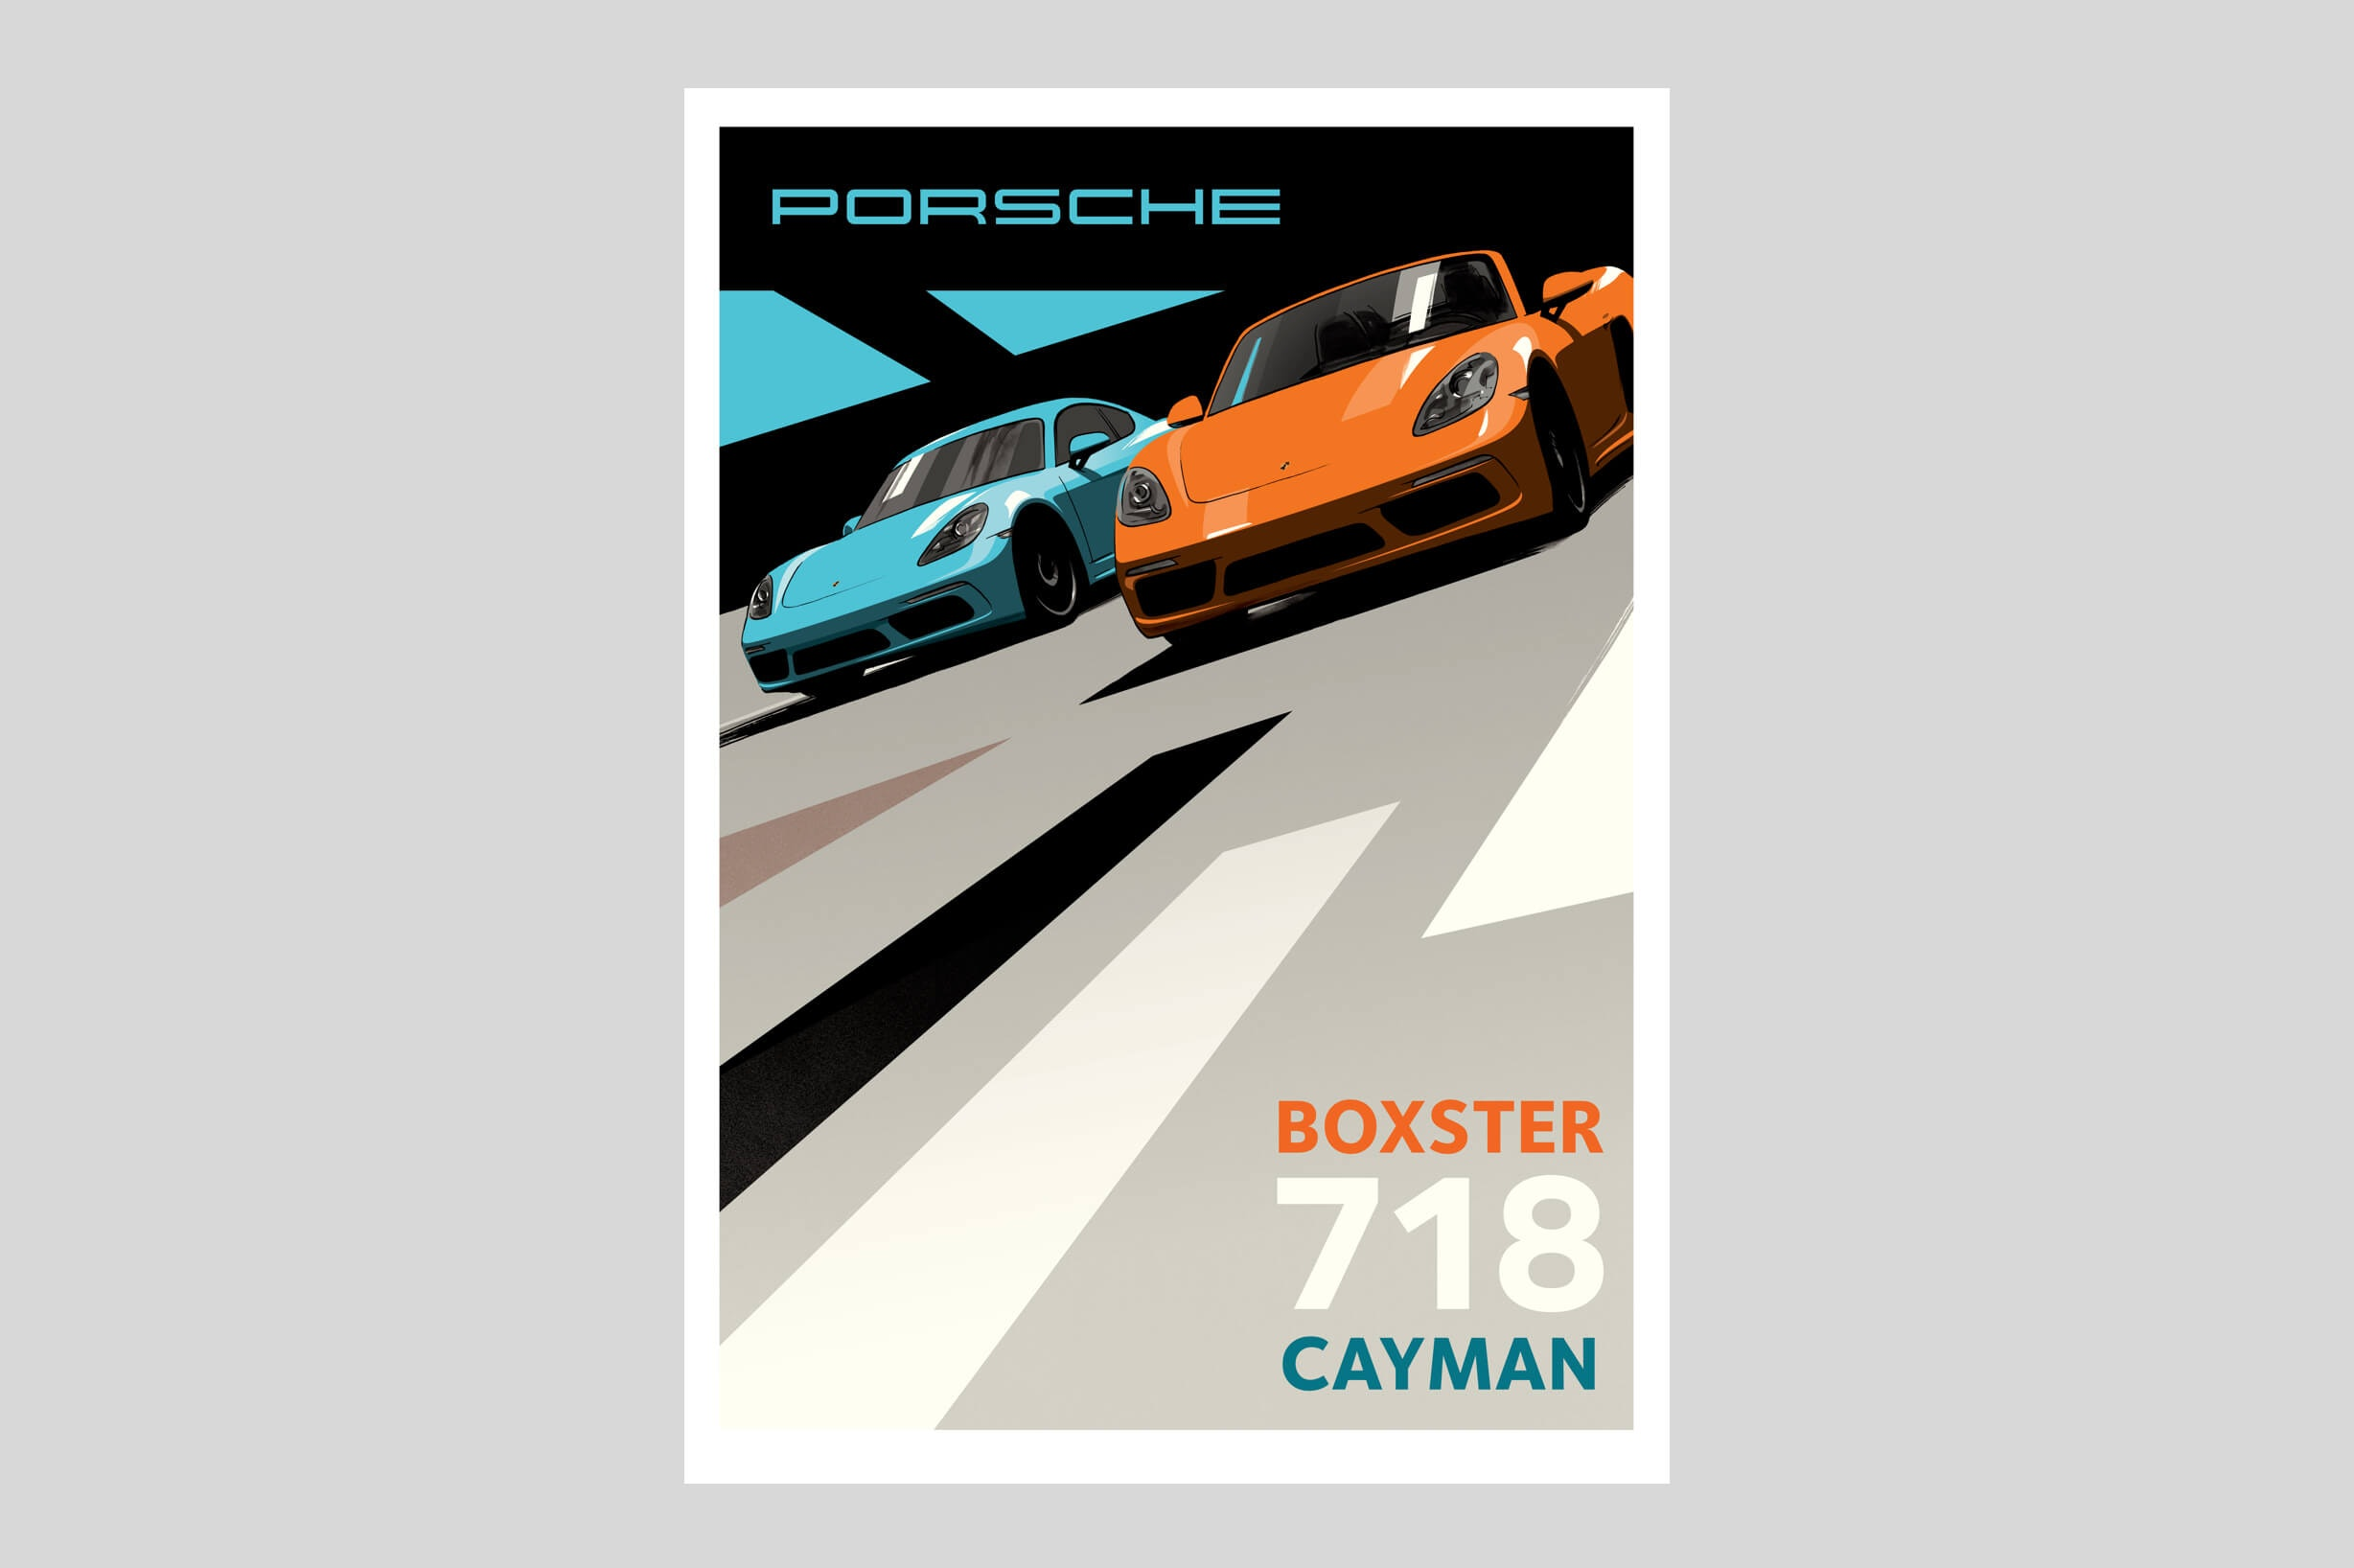 718 Boxster Cayman